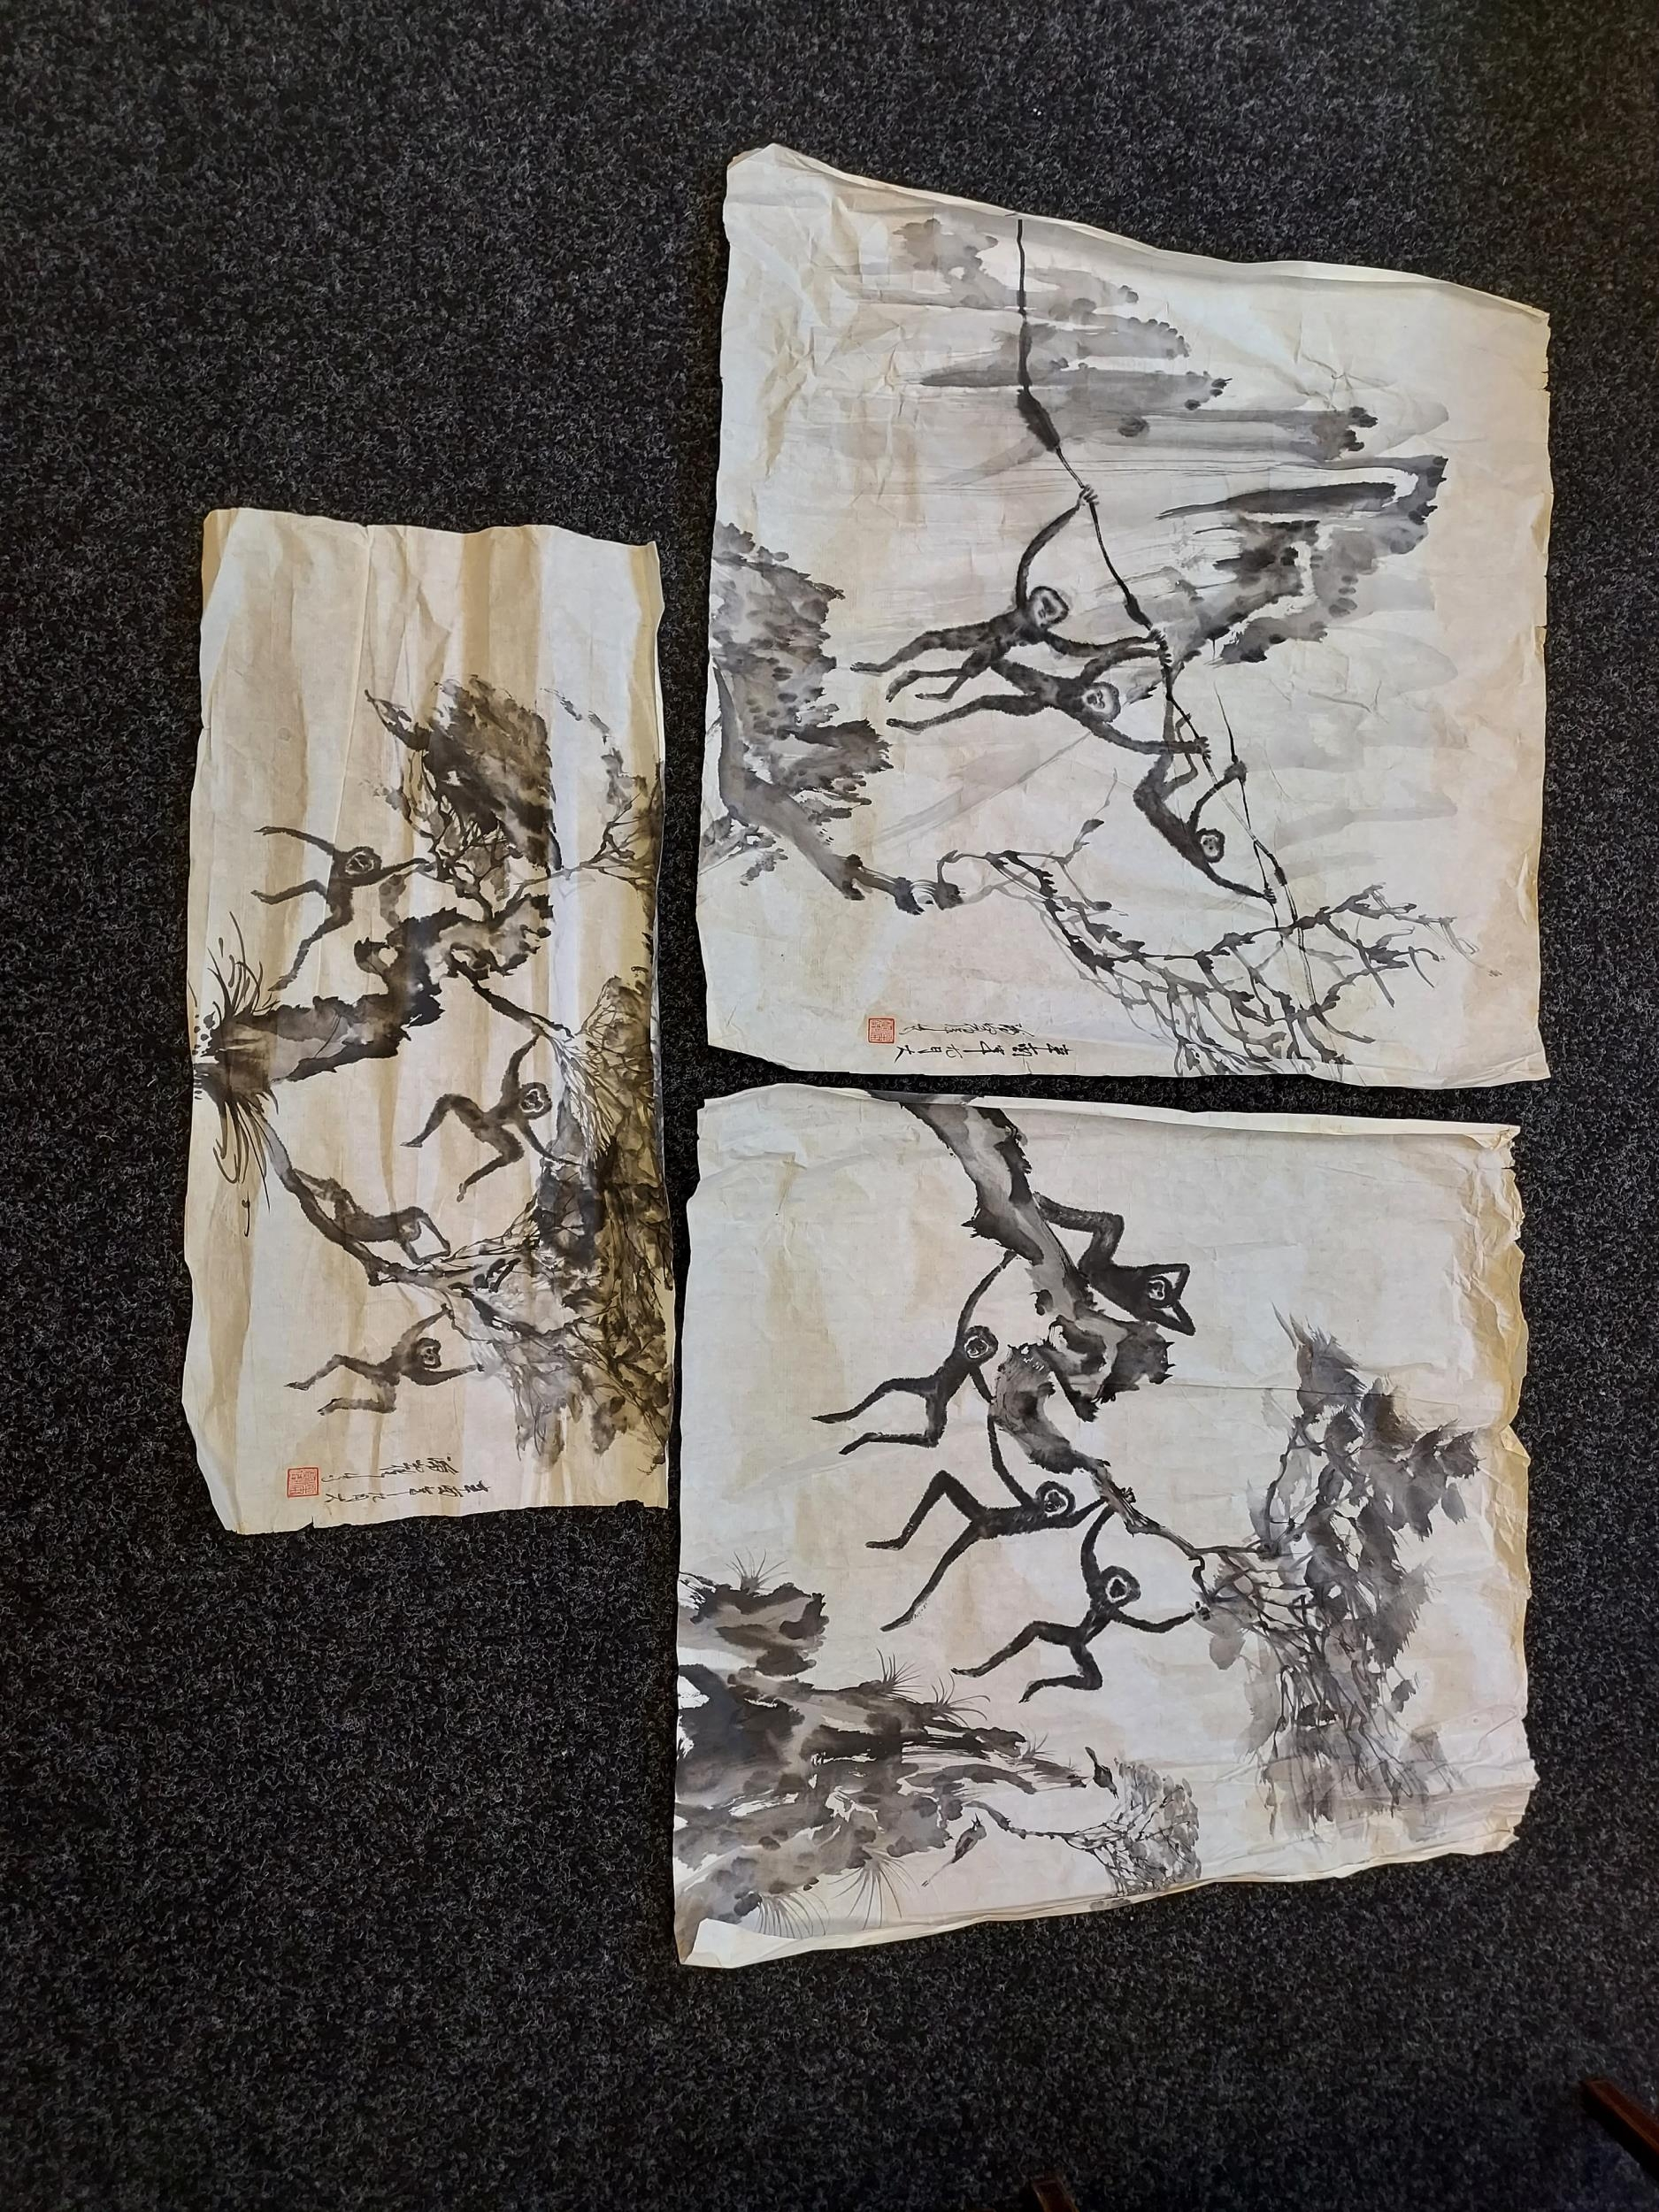 A selection of Japanese ink wash paintings depicting various monkey figures [signed by artist]